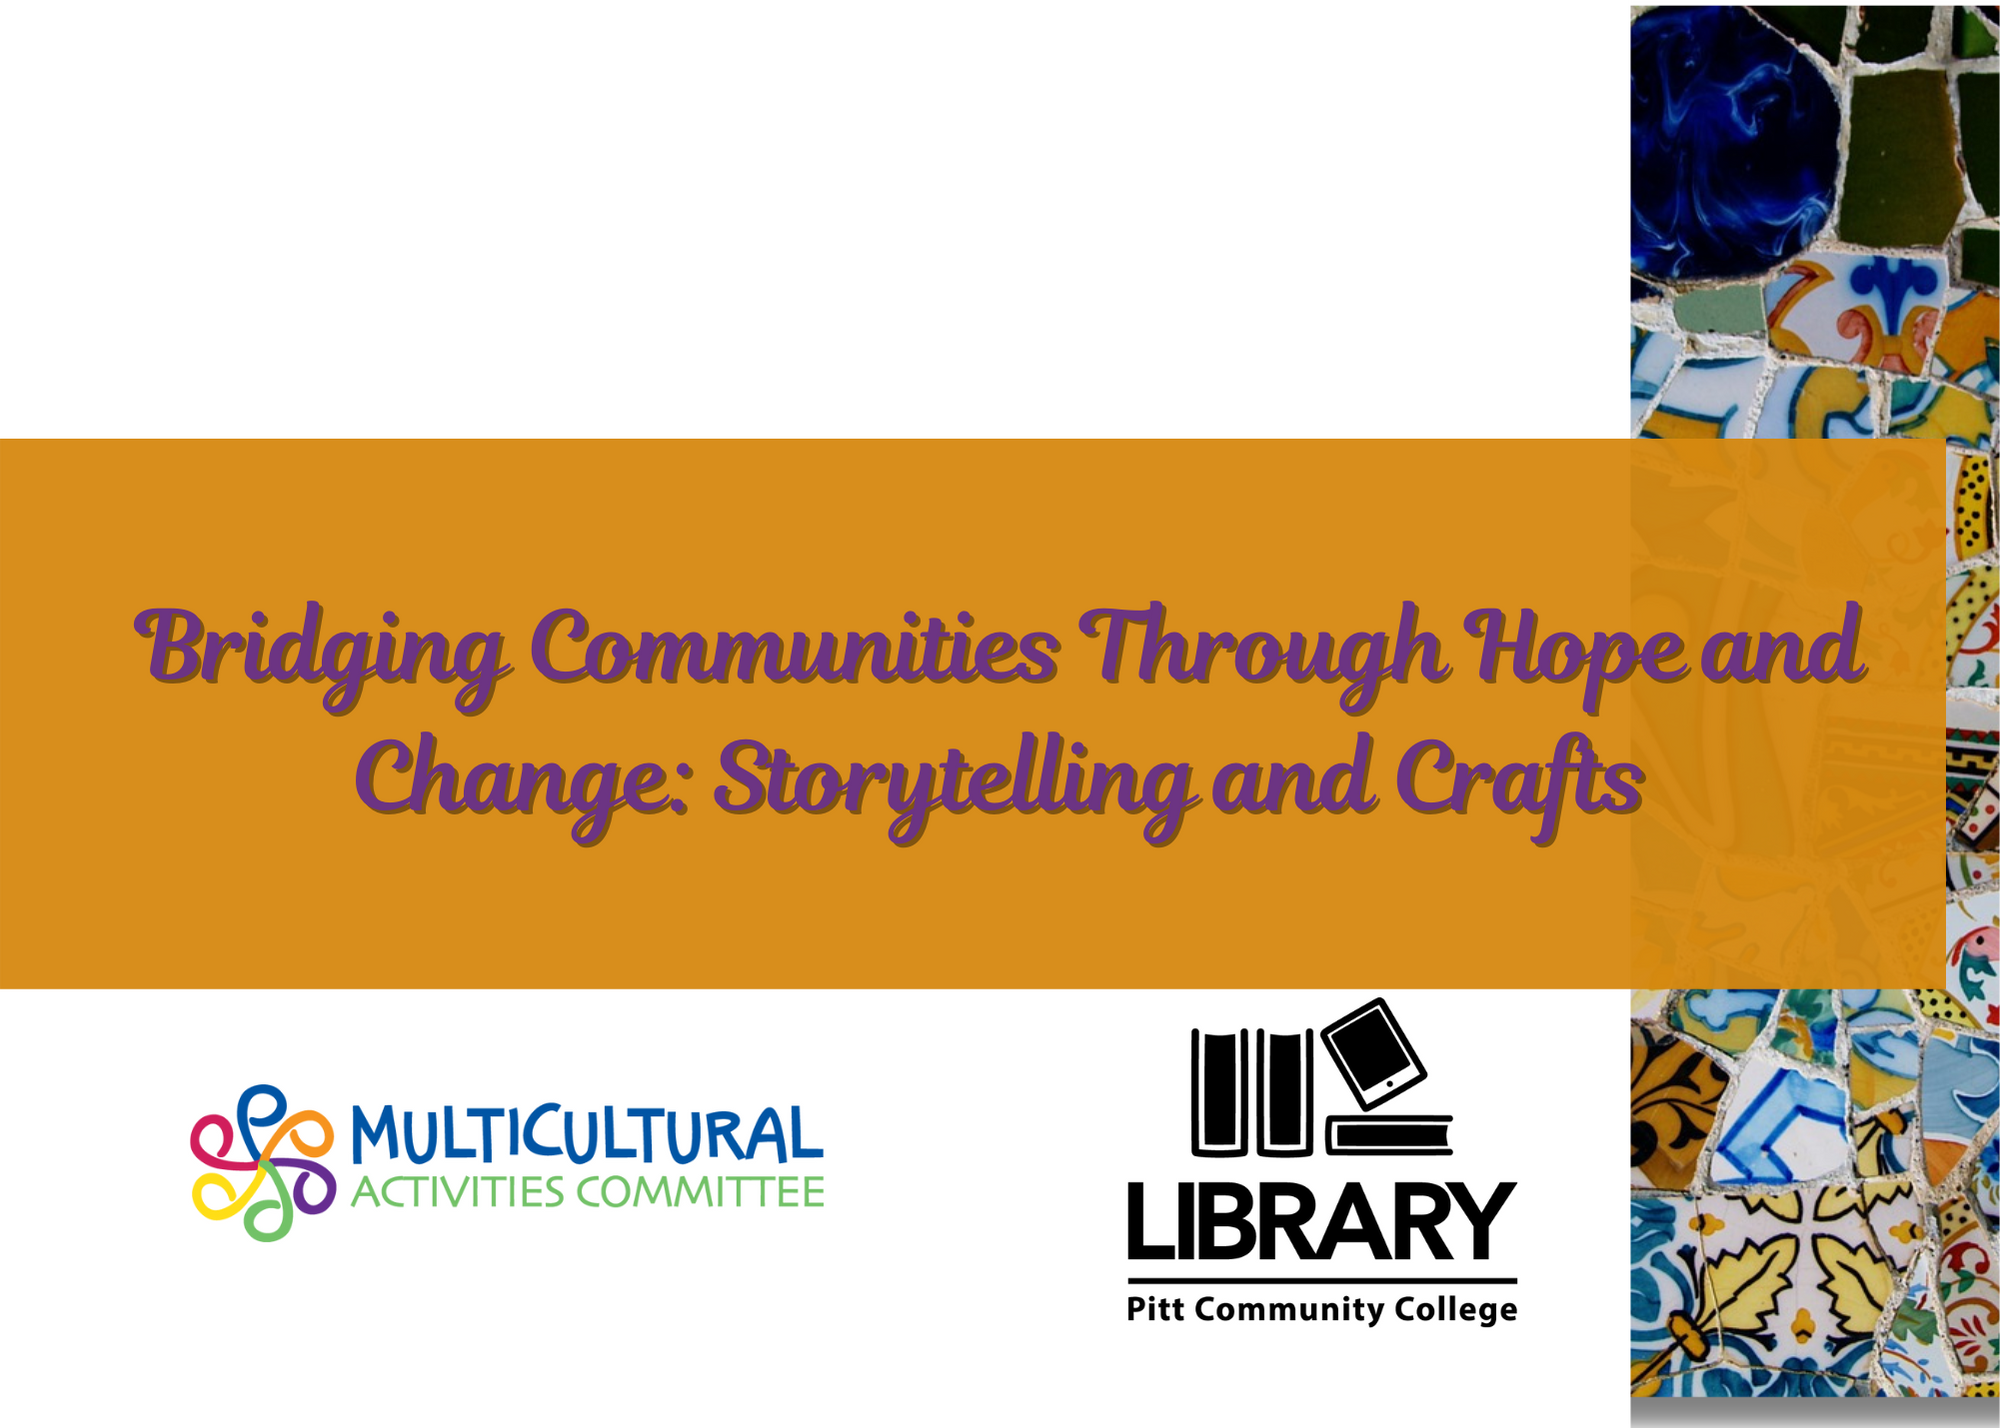 Bridging Communities Through Hope and Change: Storytelling and Crafts